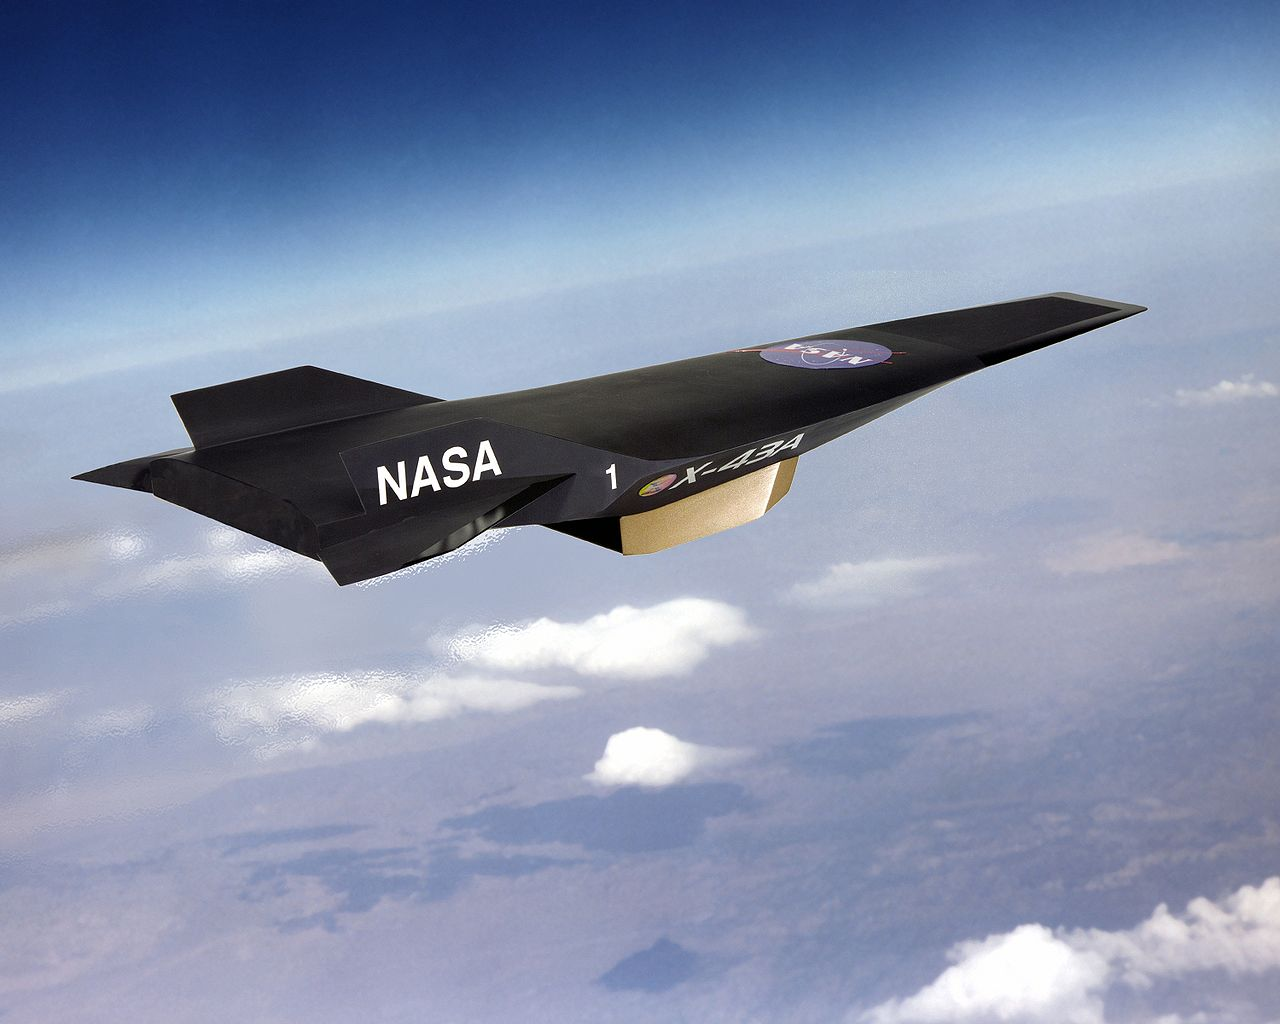 NASA X-43A en vol - Impression d'artiste